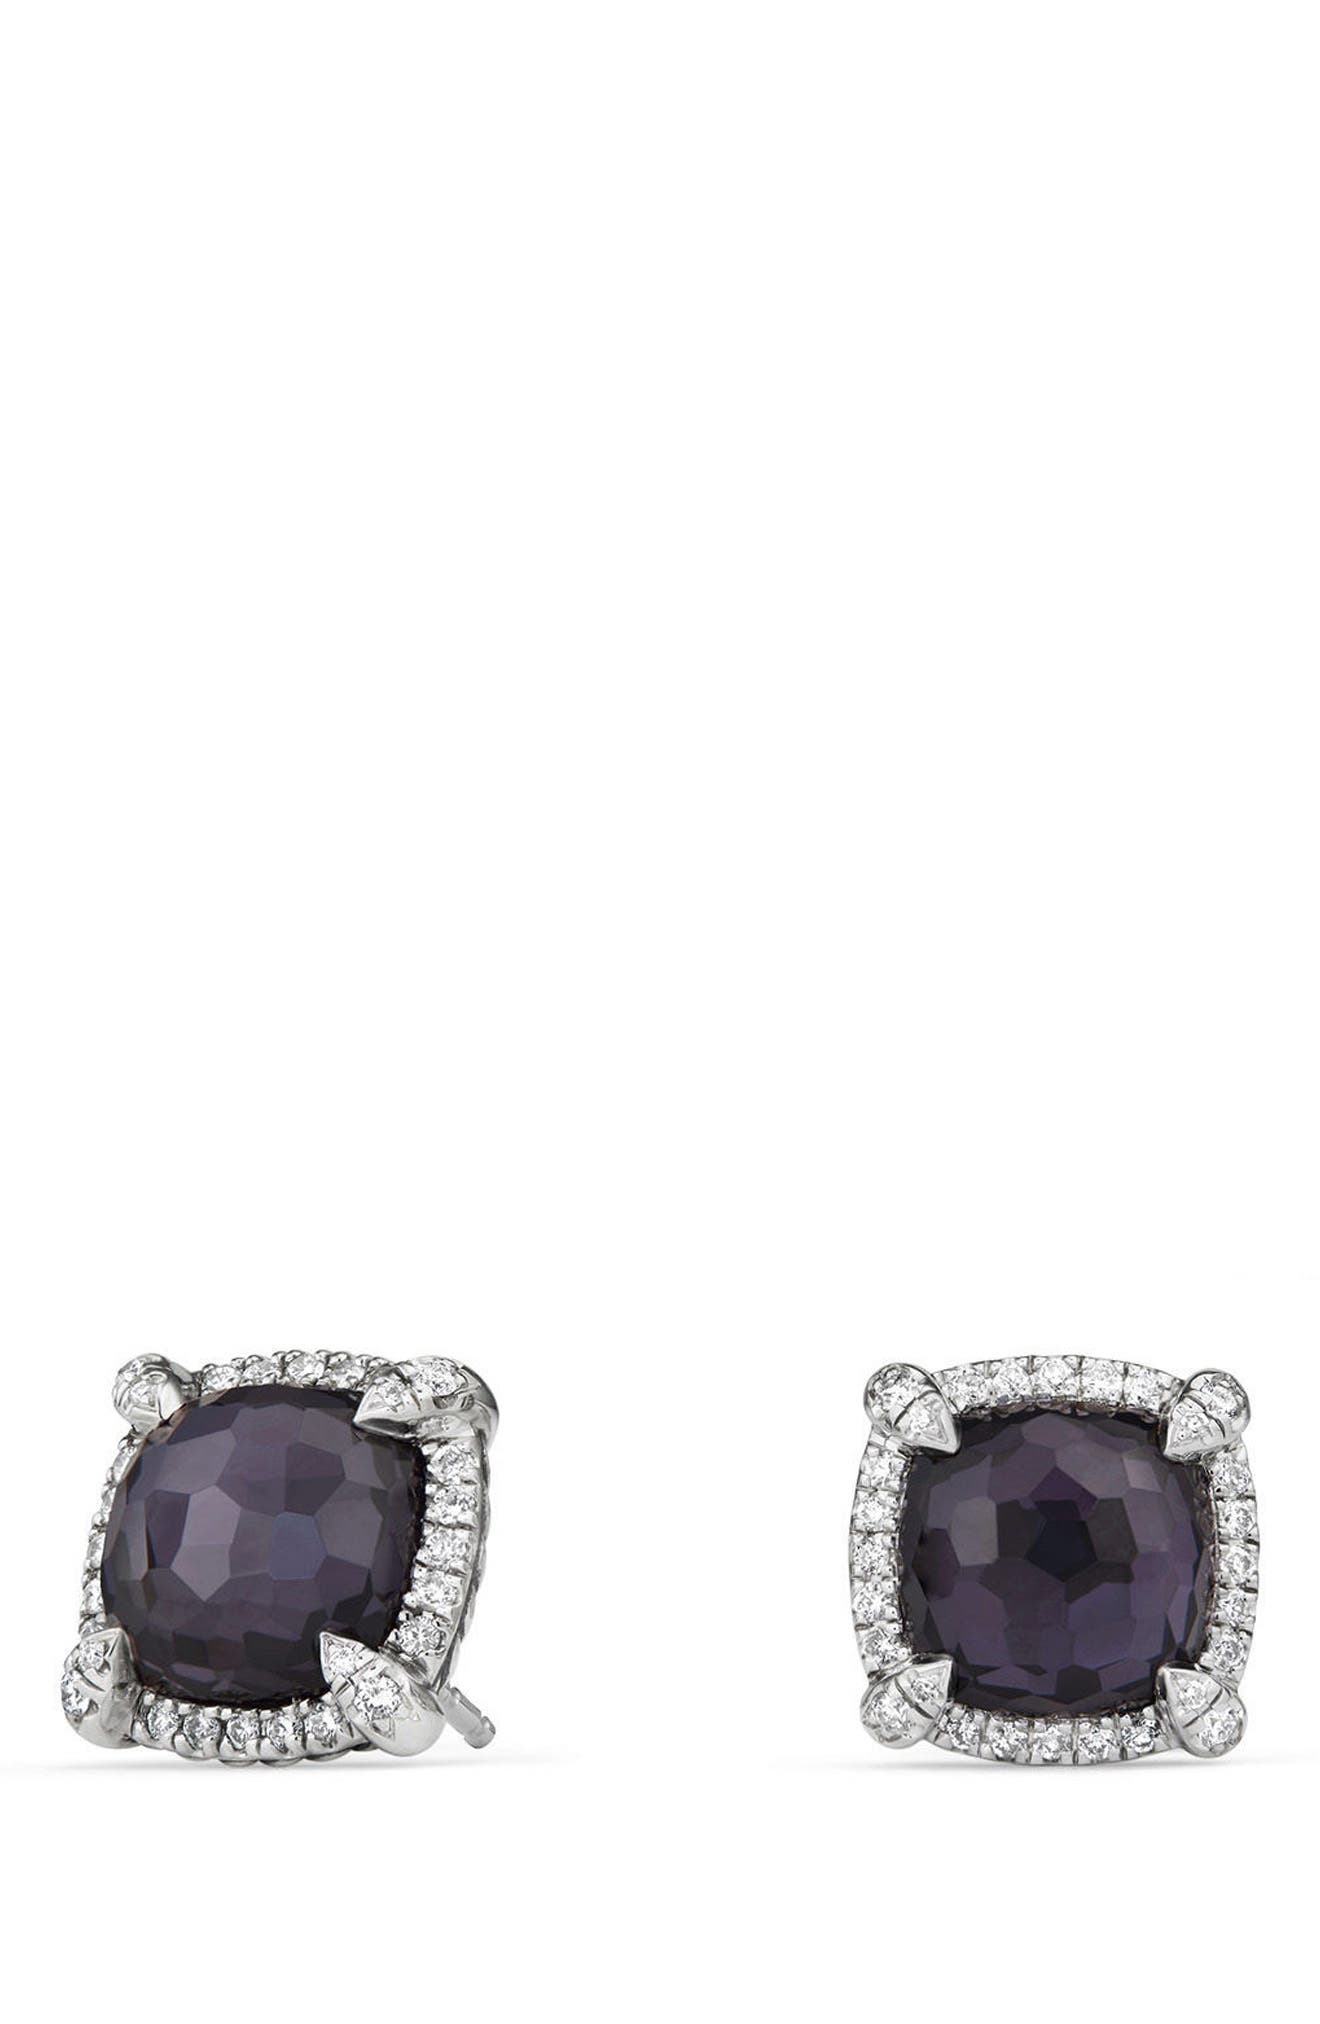 Main Image - David Yurman Chatelaine Pavé Bezel Earring with Black Orchid and Diamonds, 9mm